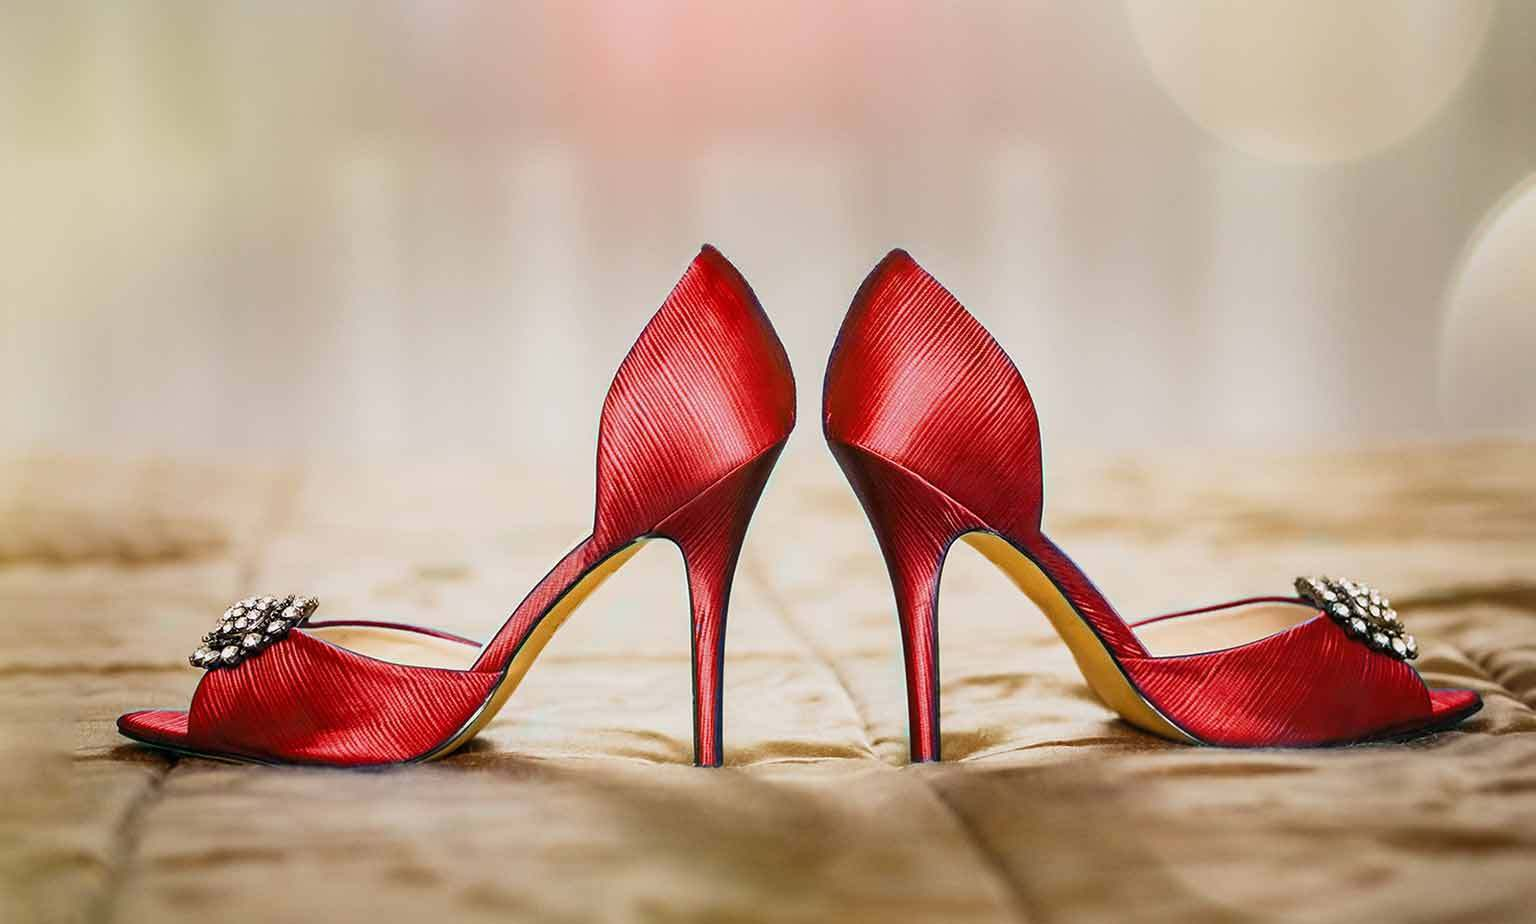 Women's pre-owned designer shoes